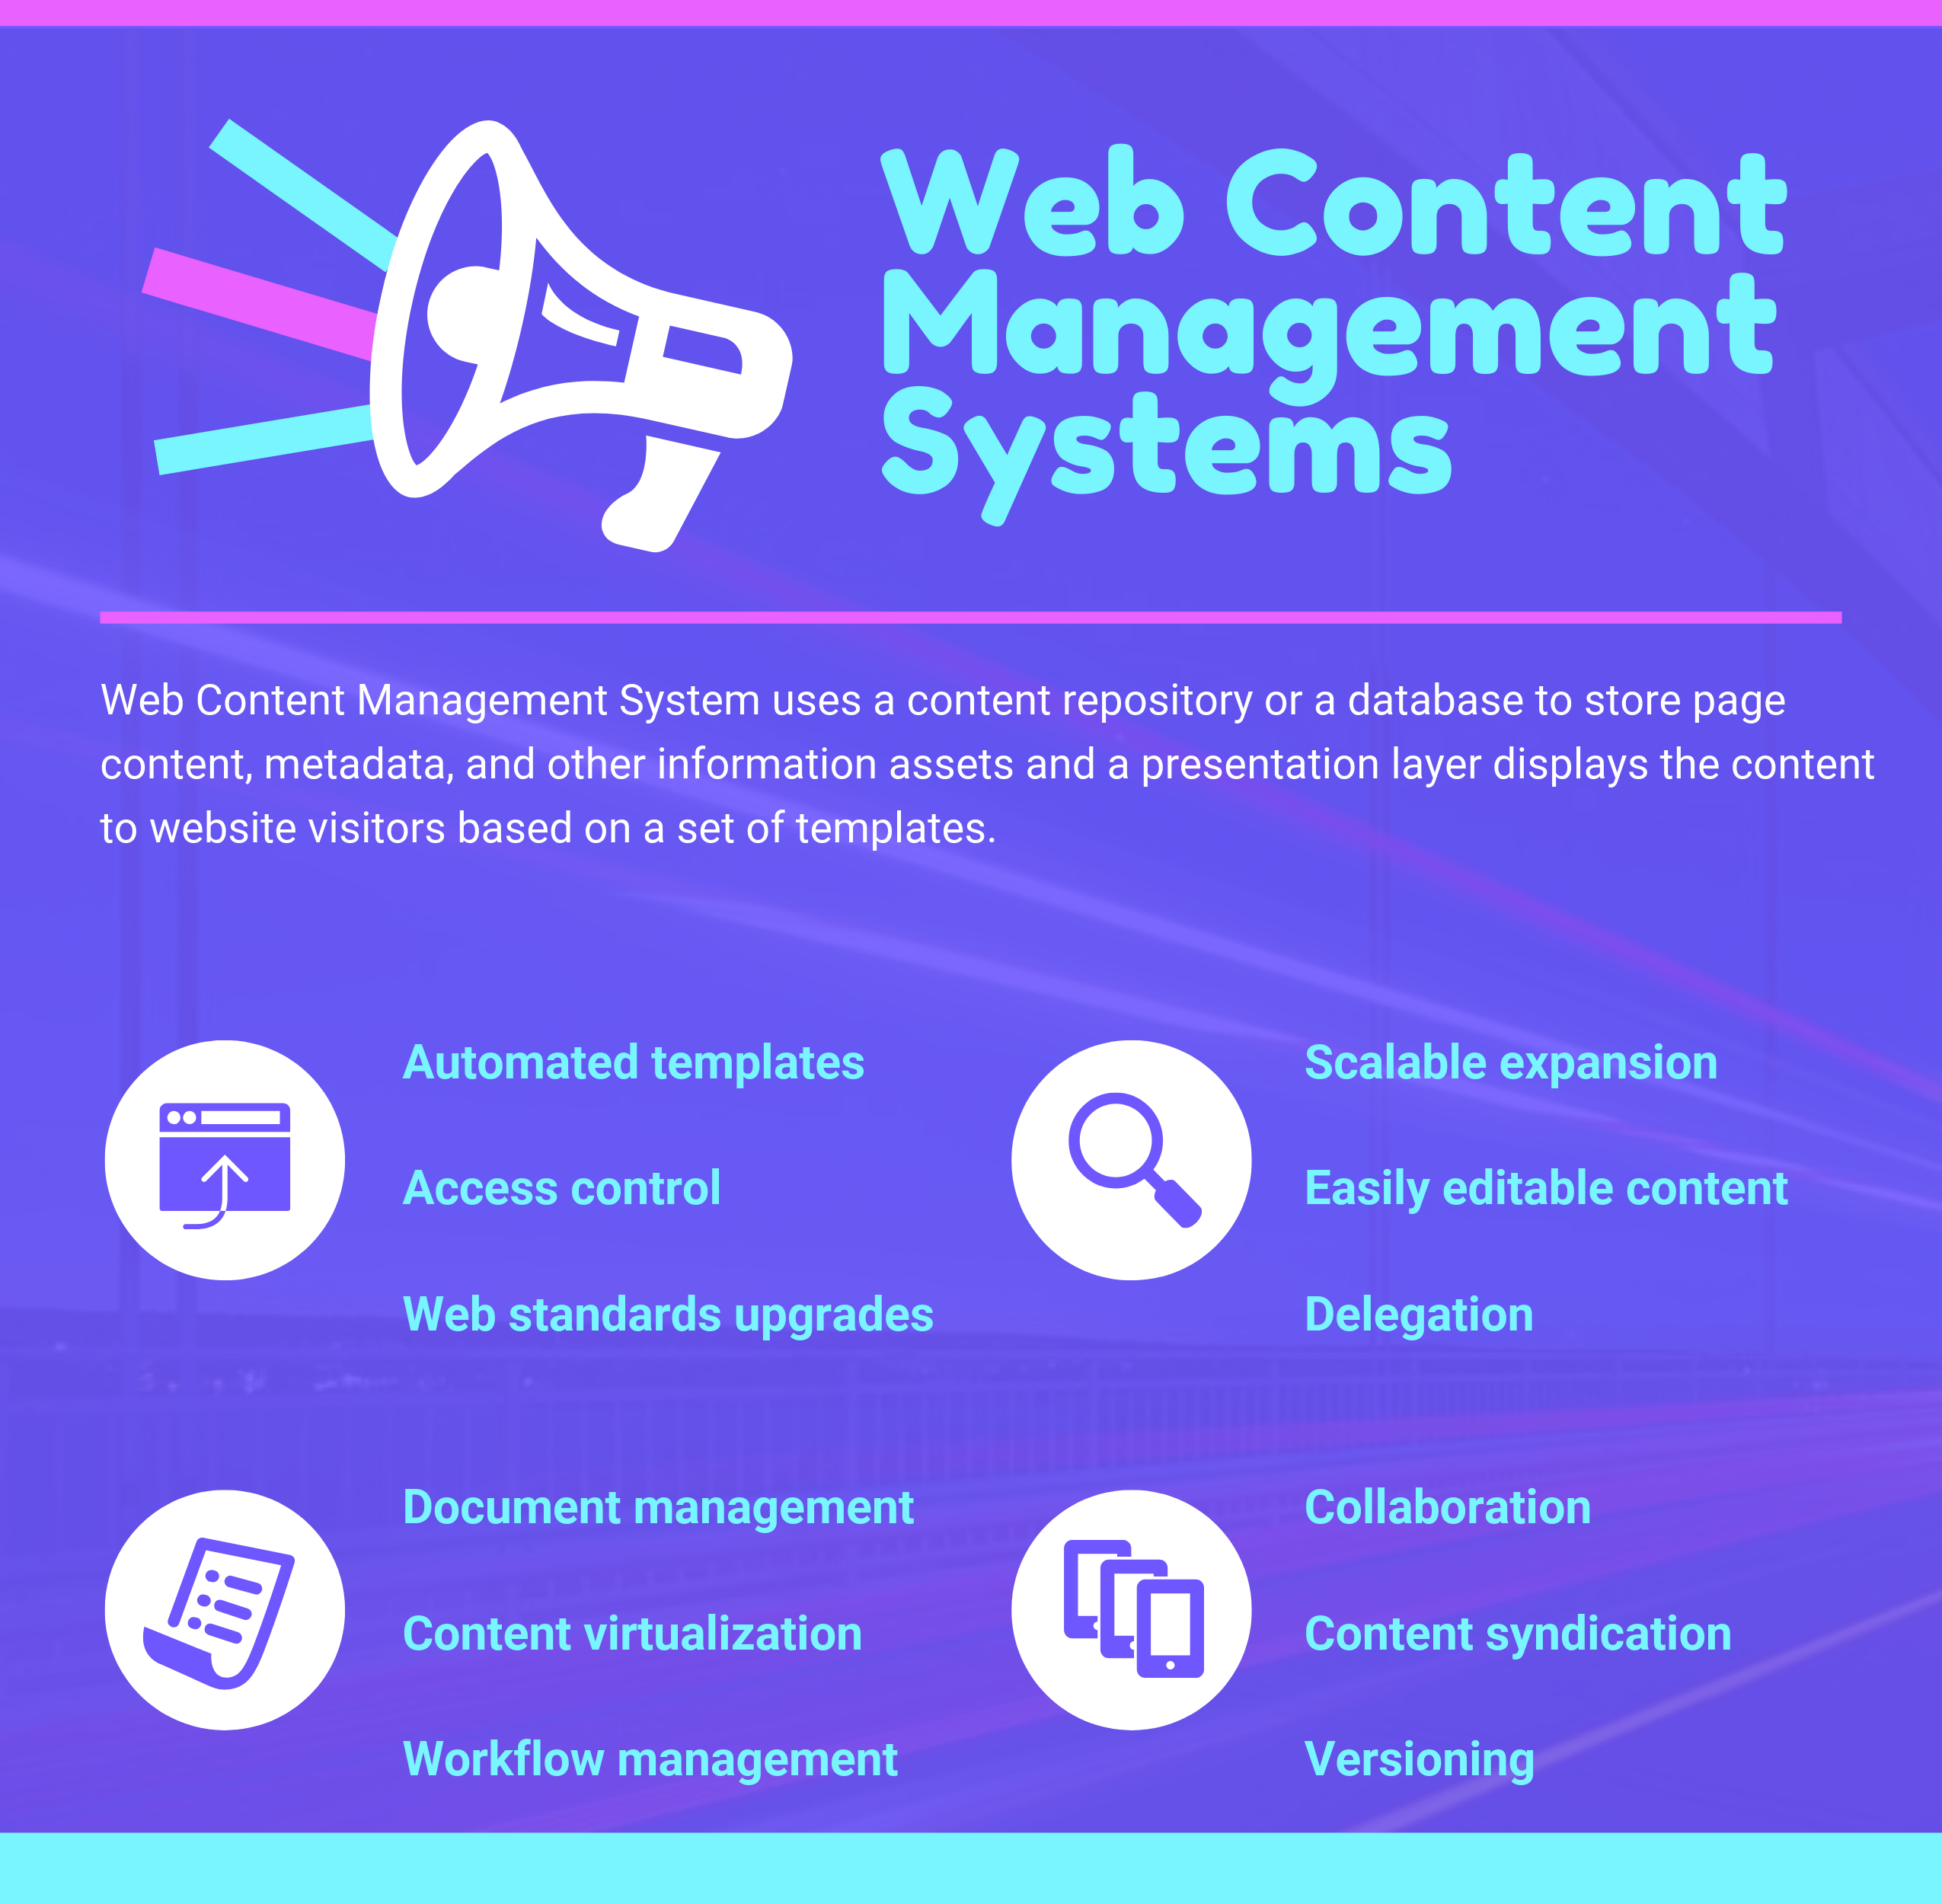 What are the features of Web Content Management System